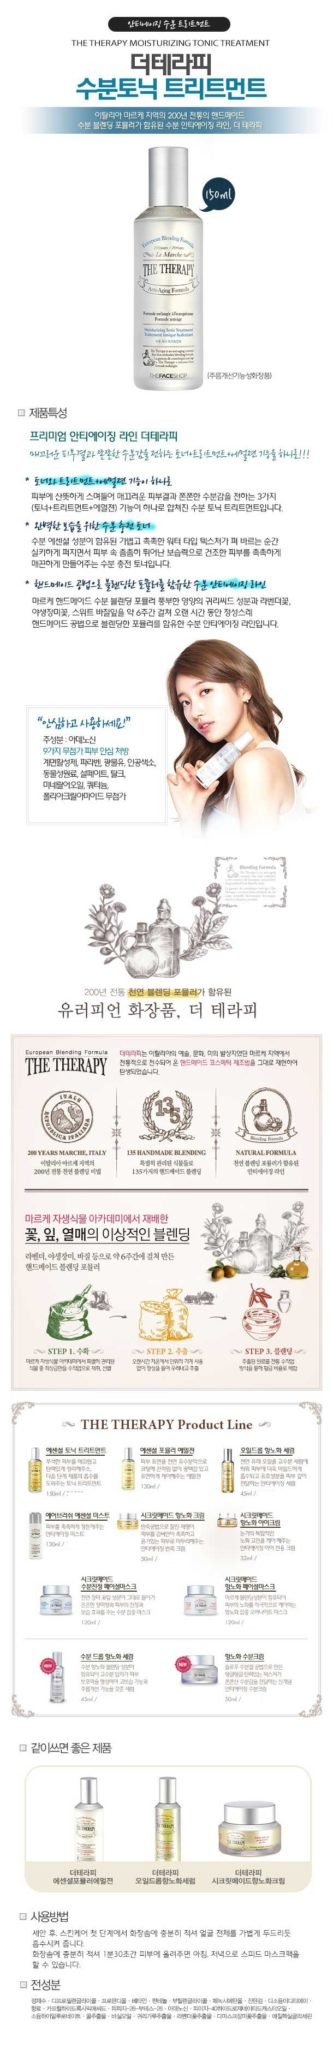 The Face Shop The Therapy Moisturizing Tonic Treatment 150ml